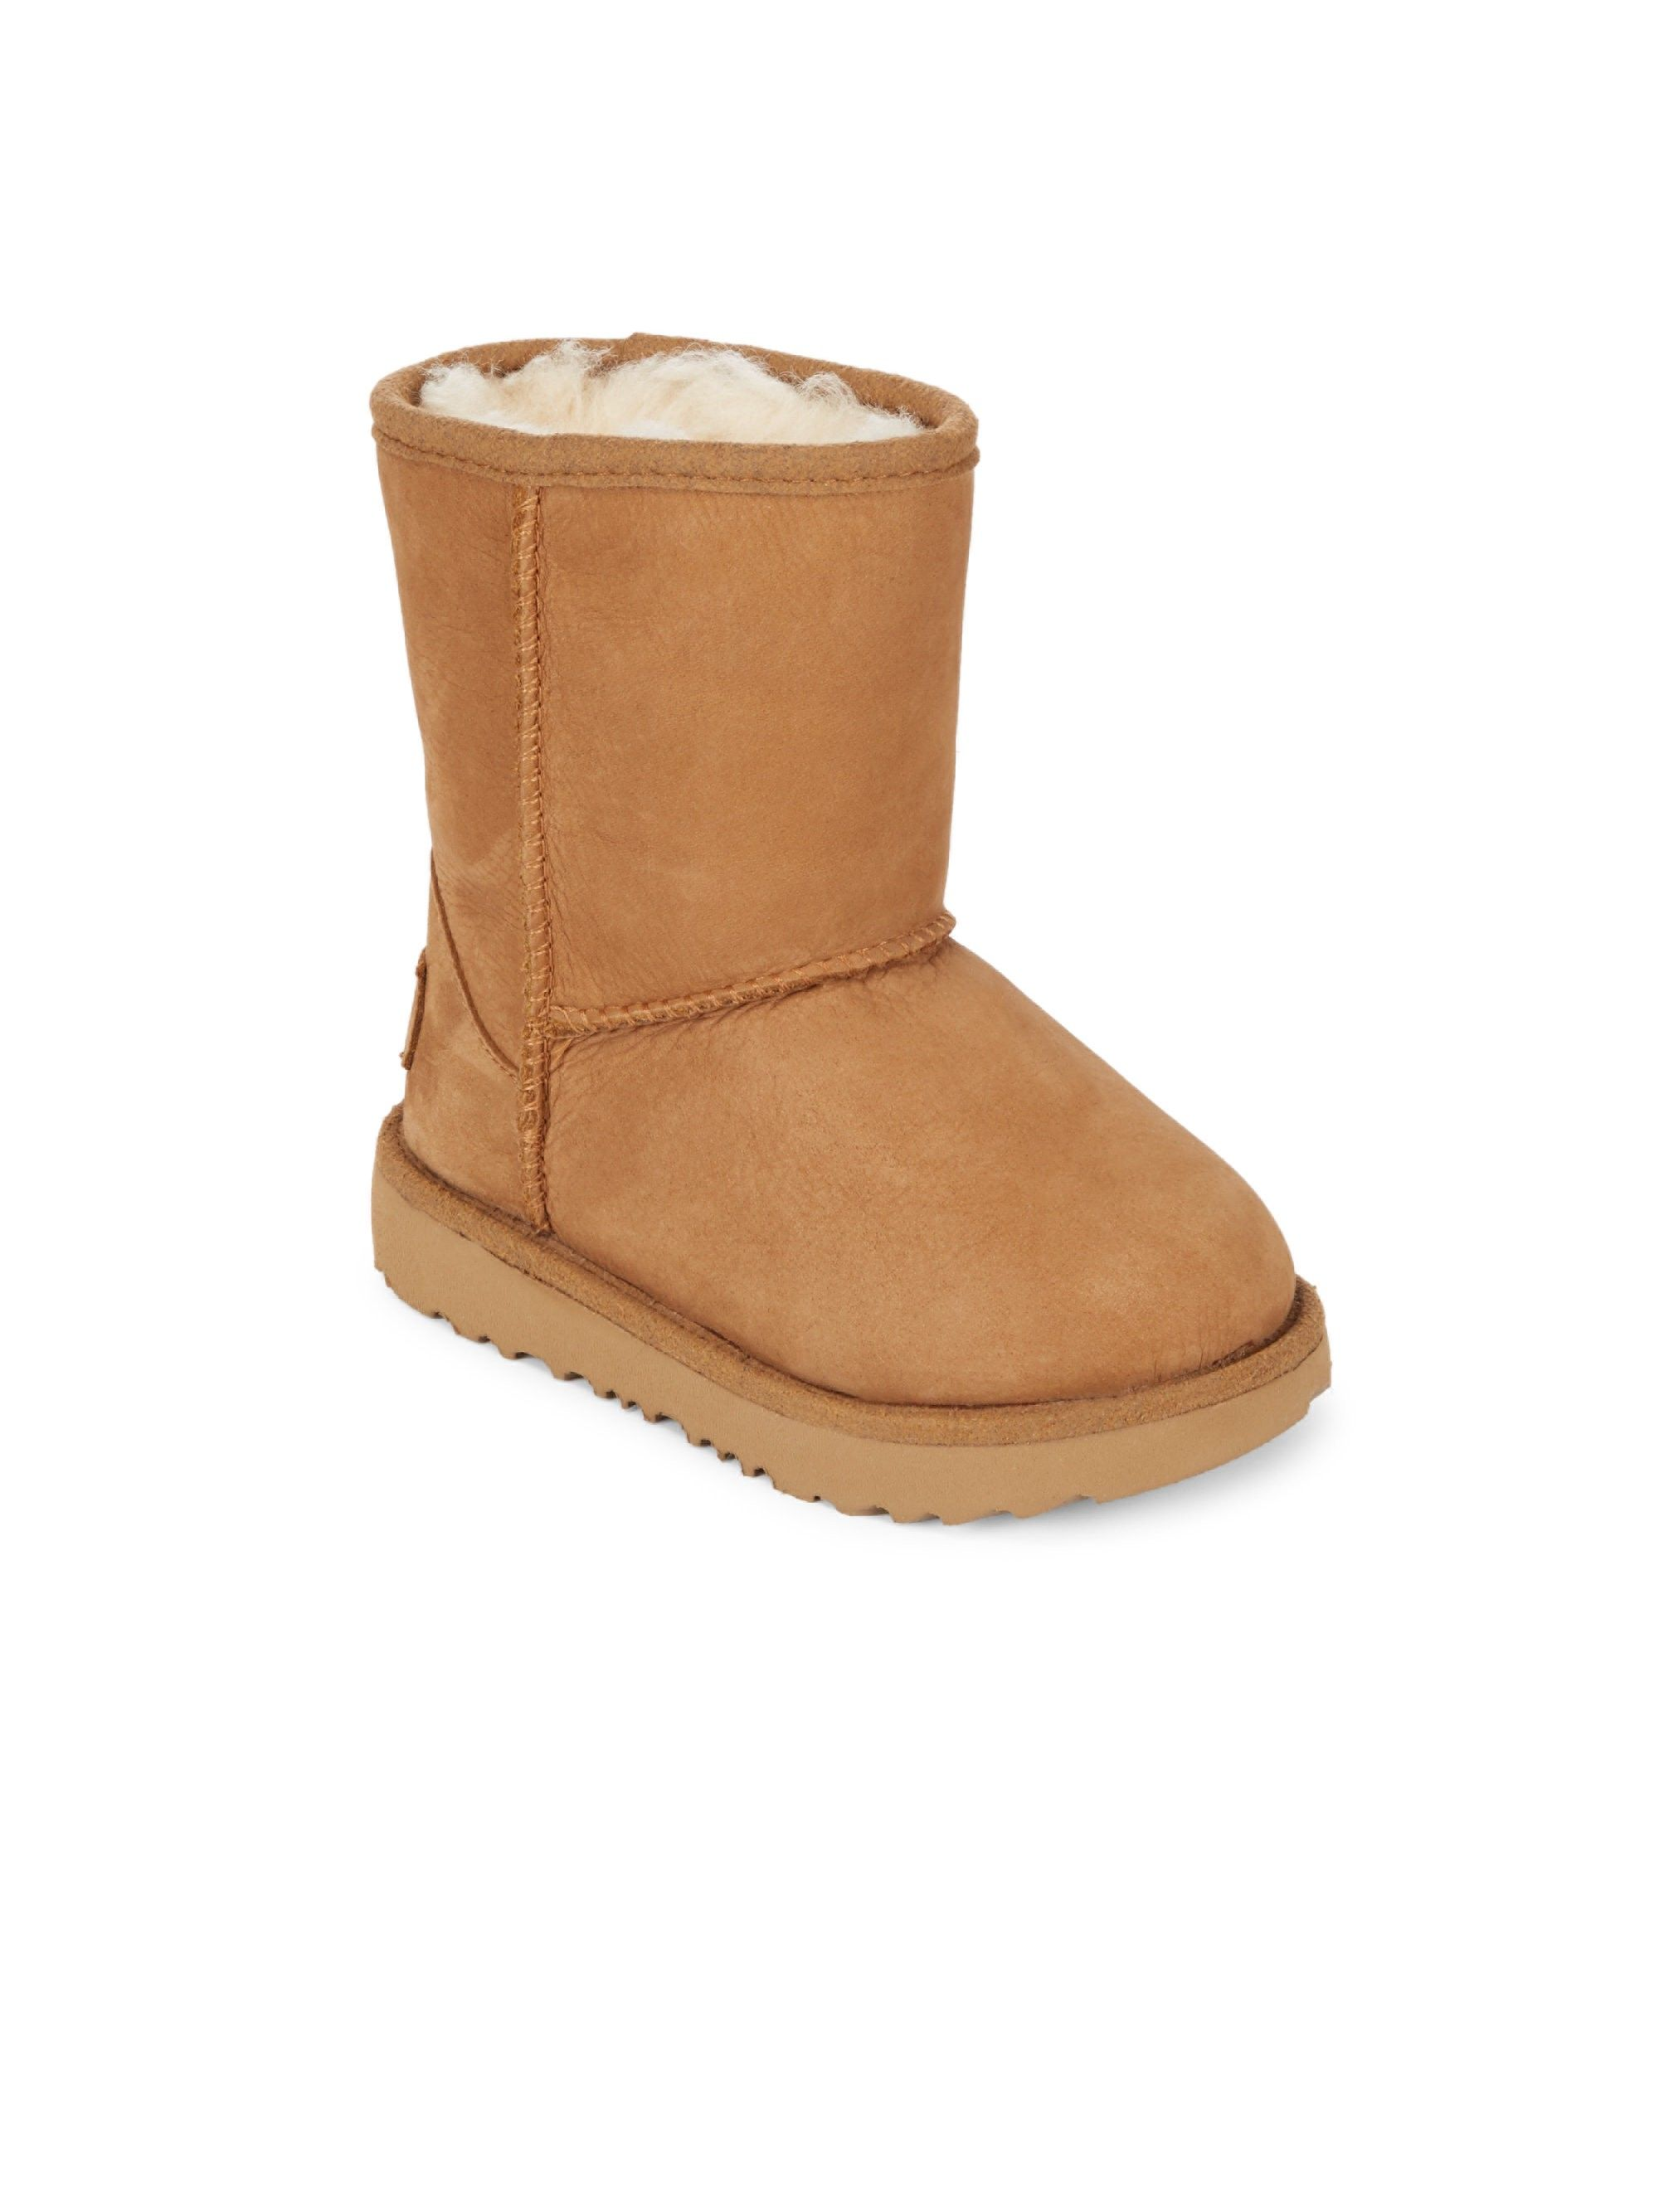 23733f501ca Ugg Australia Kid's Classic Short Faux Fur Lined & Leather Boots ...